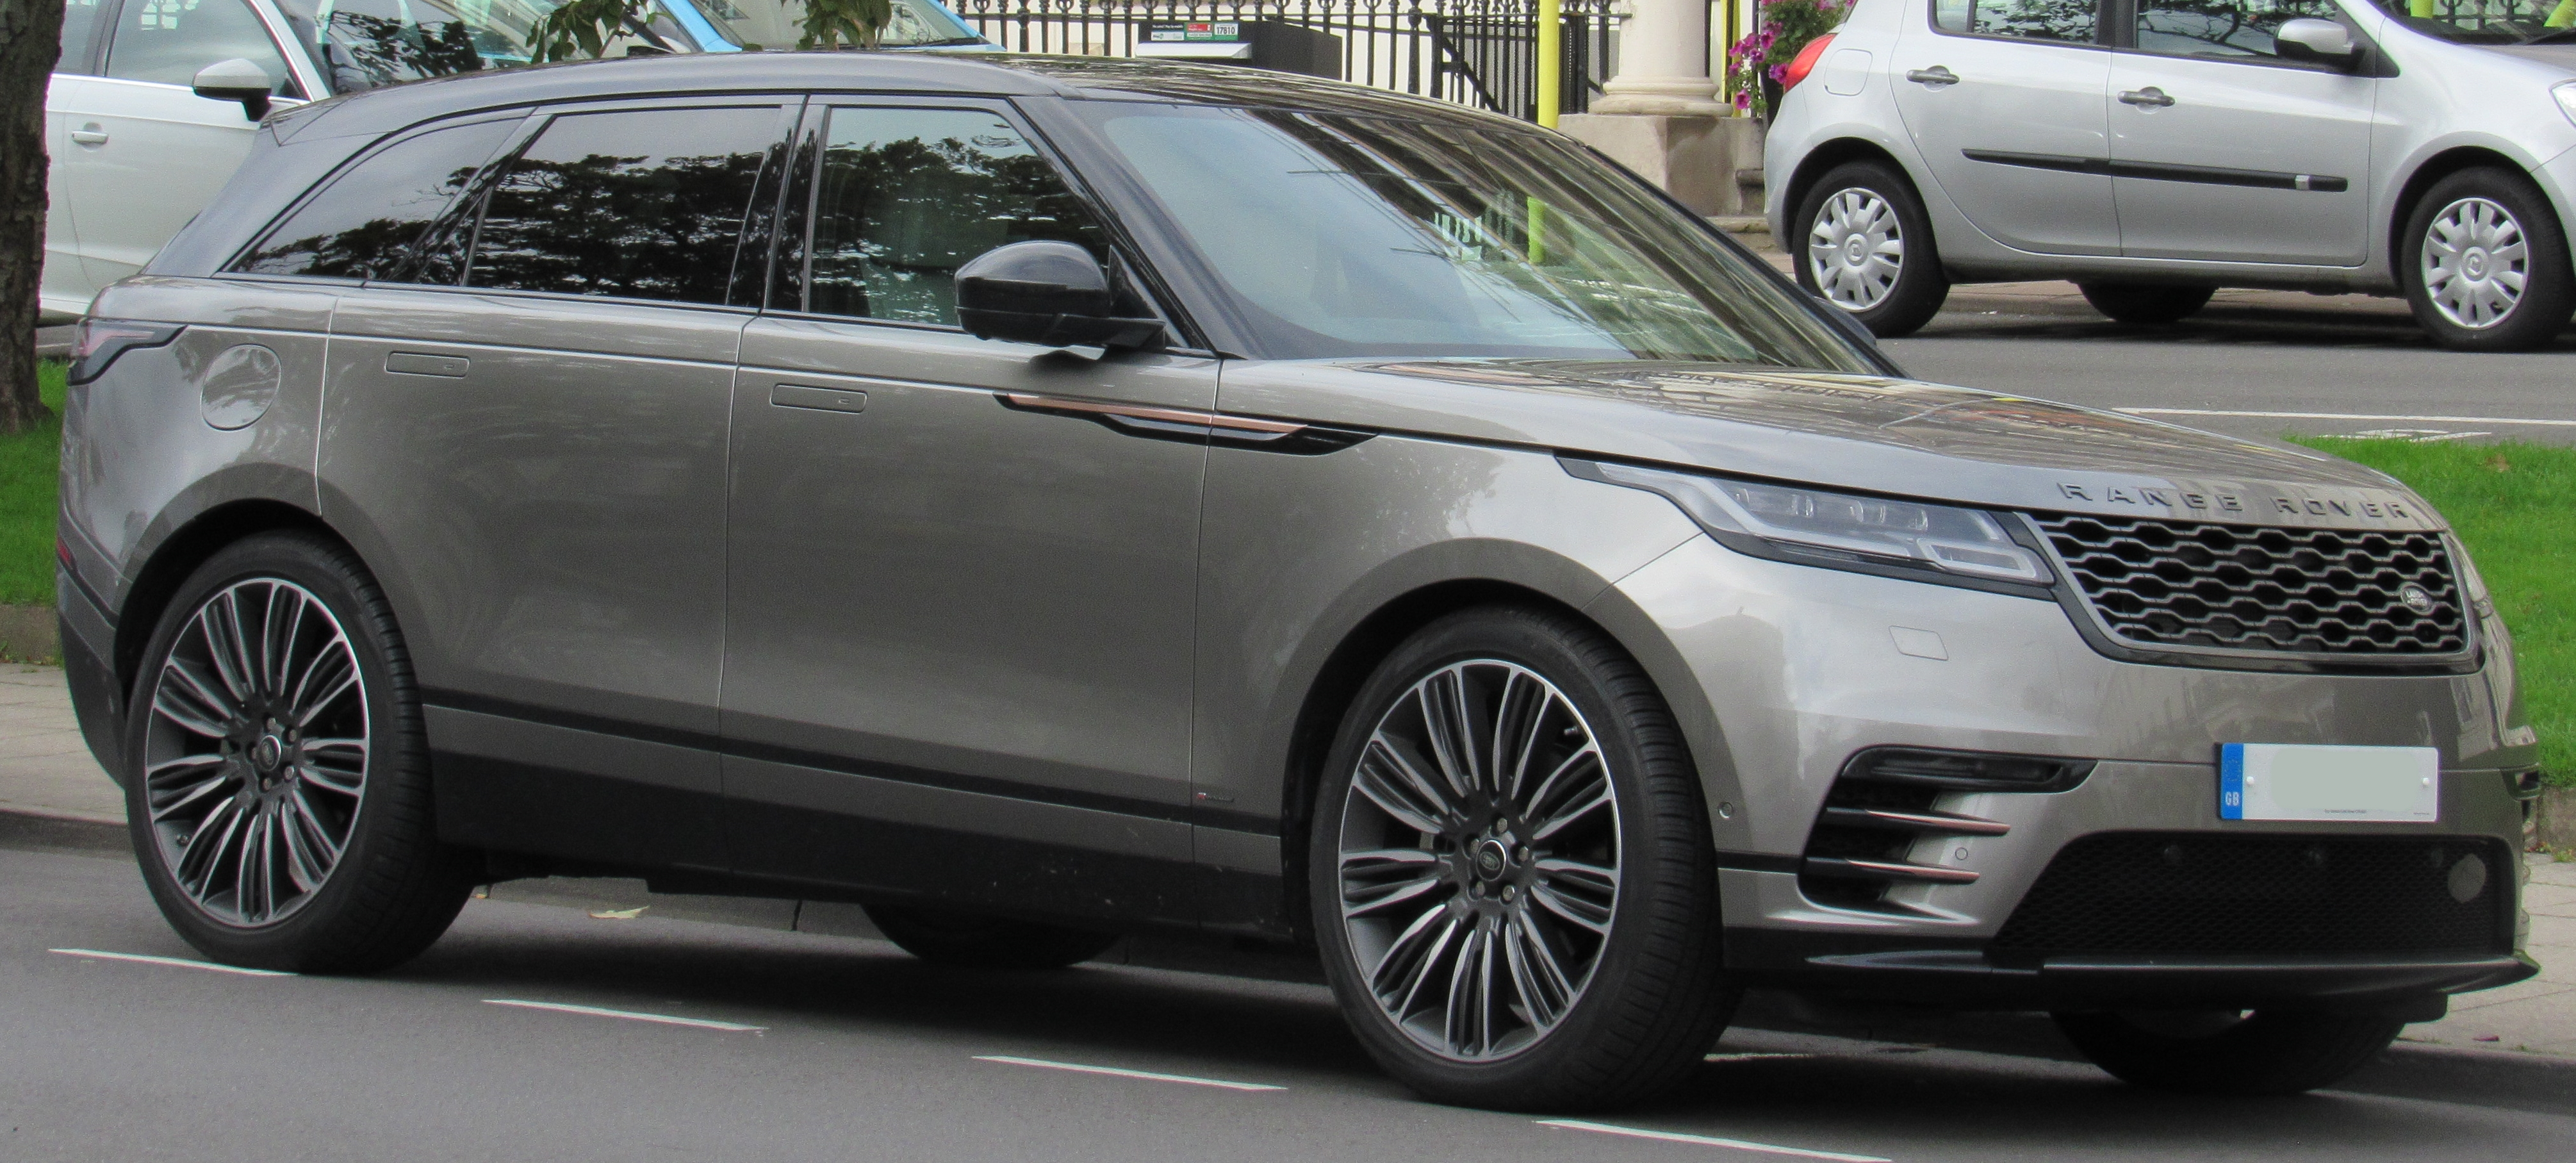 file 2017 land rover range rover velar first edition d3 3